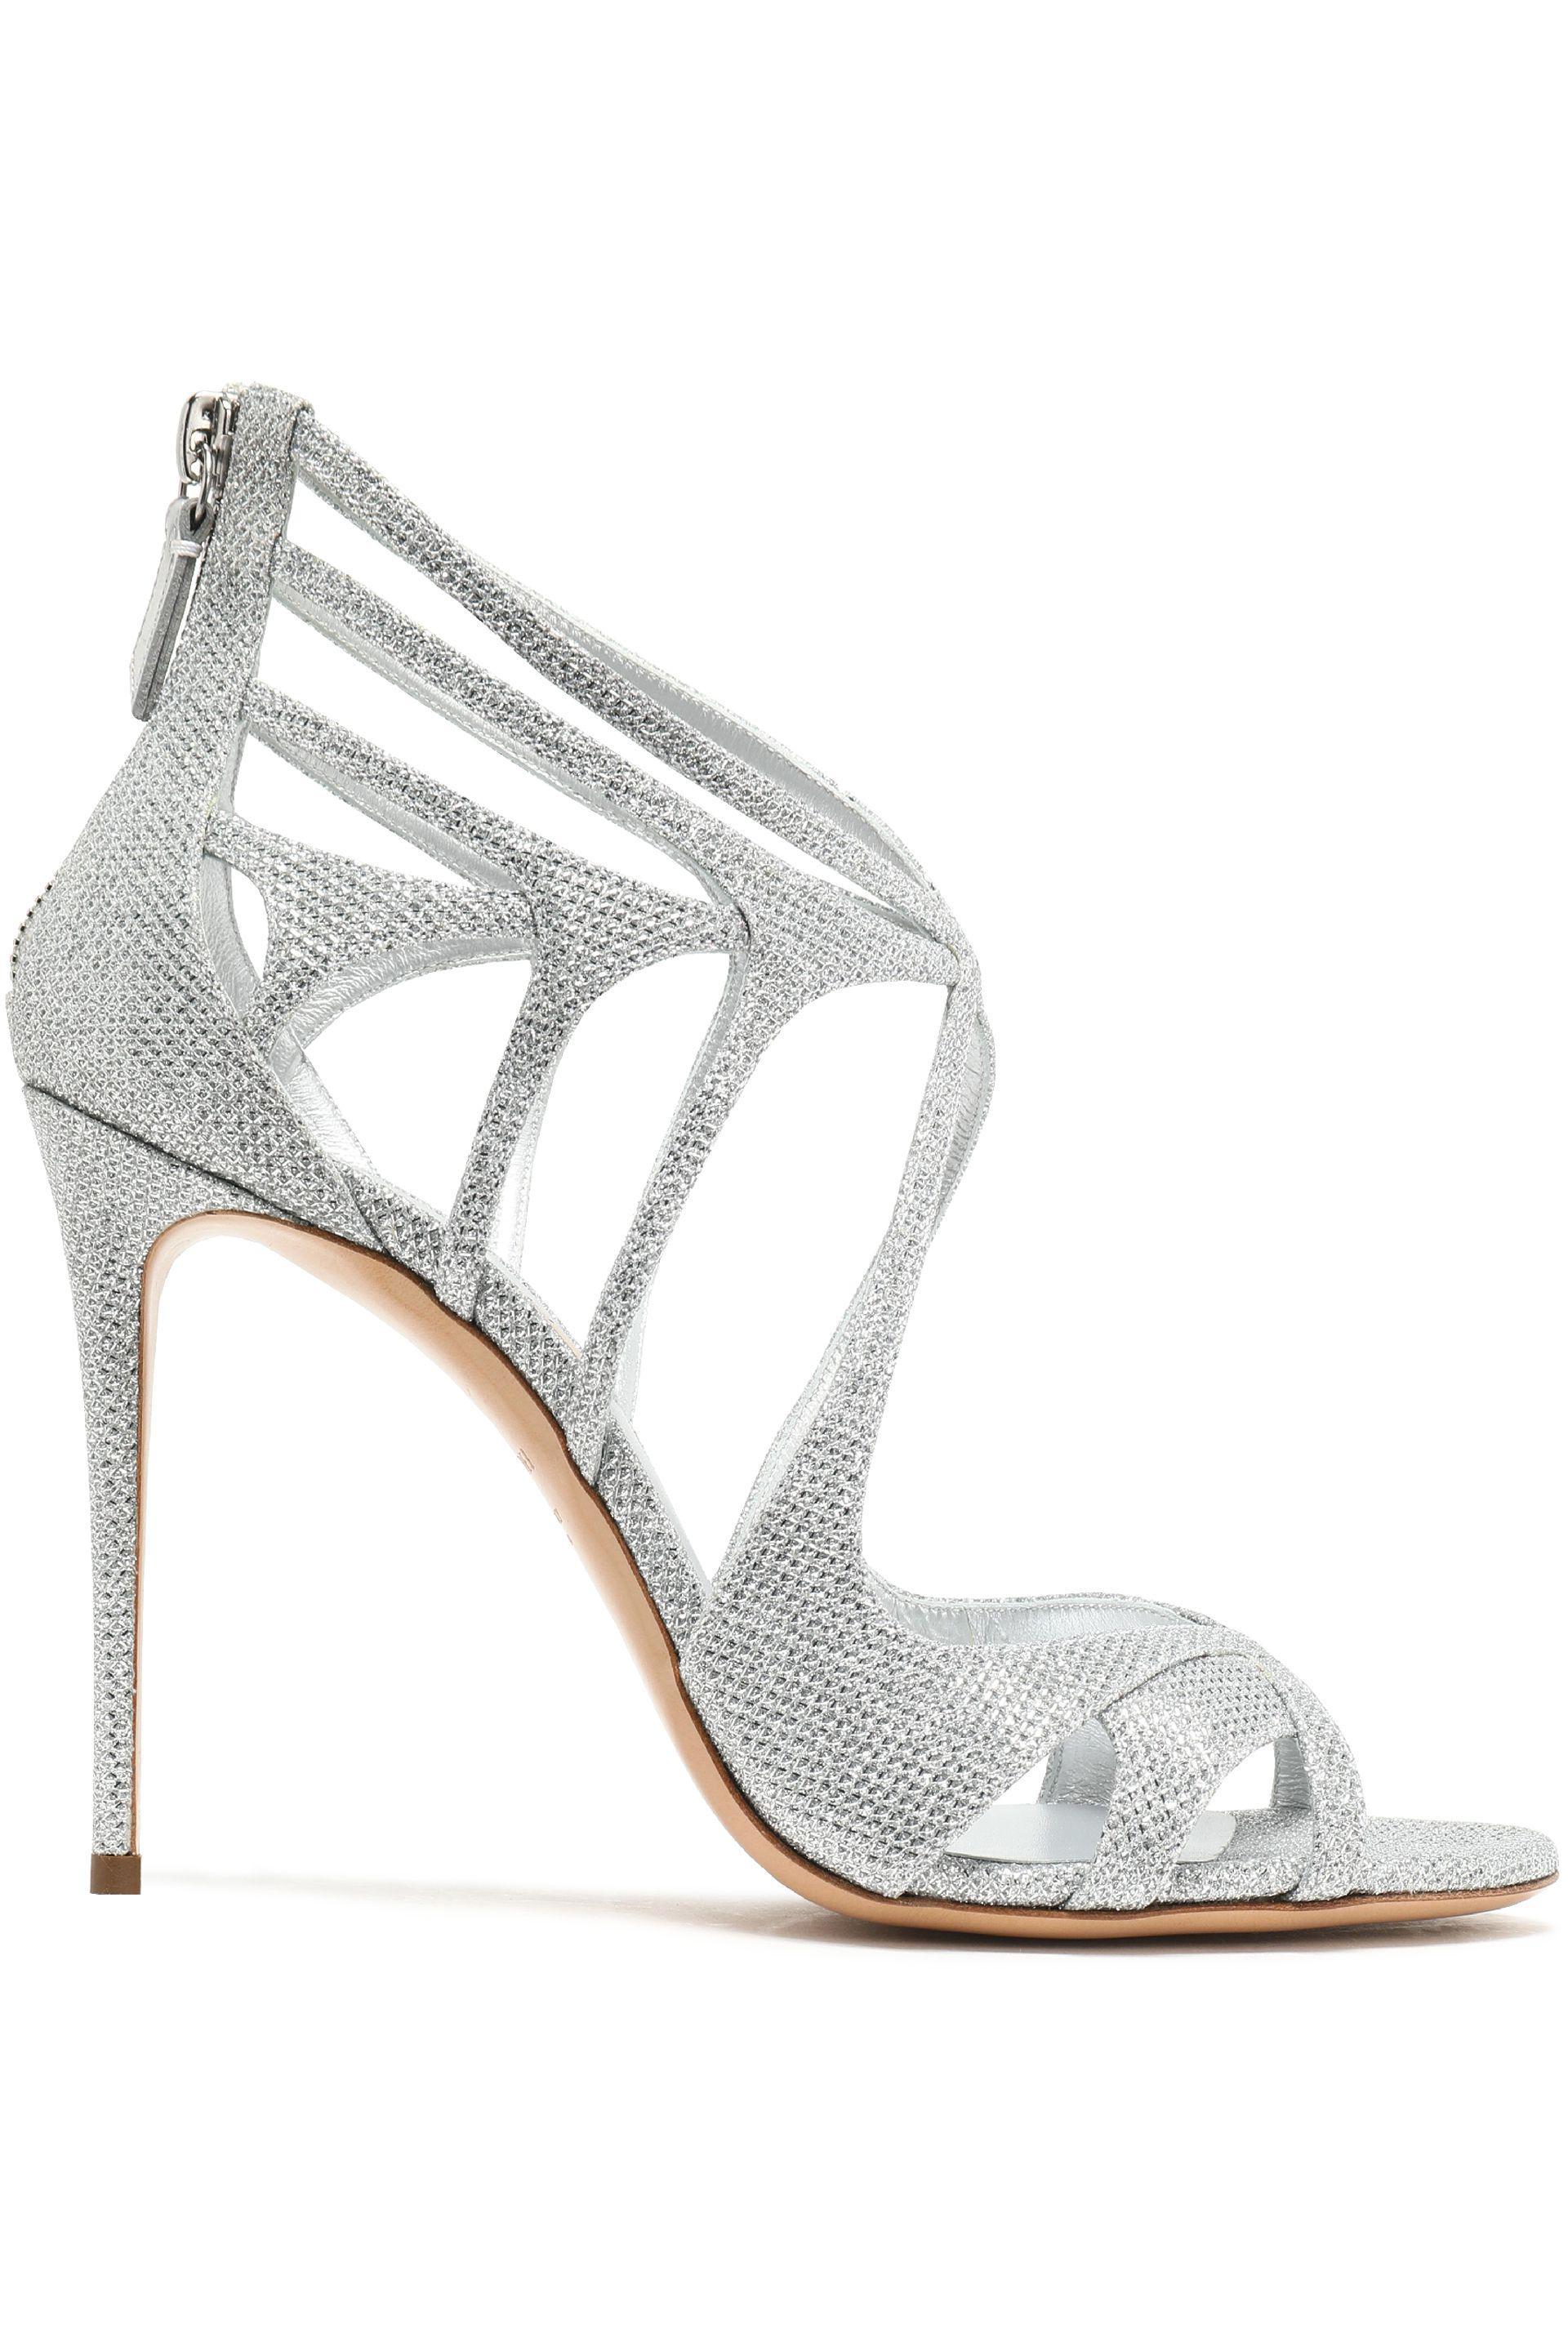 Buy Cheap Free Shipping Sale Deals Casadei Woman Cutout Metallic Mesh Sandals Size 35 Great Deals Online Sale Online Cheap ZVqLceHKu